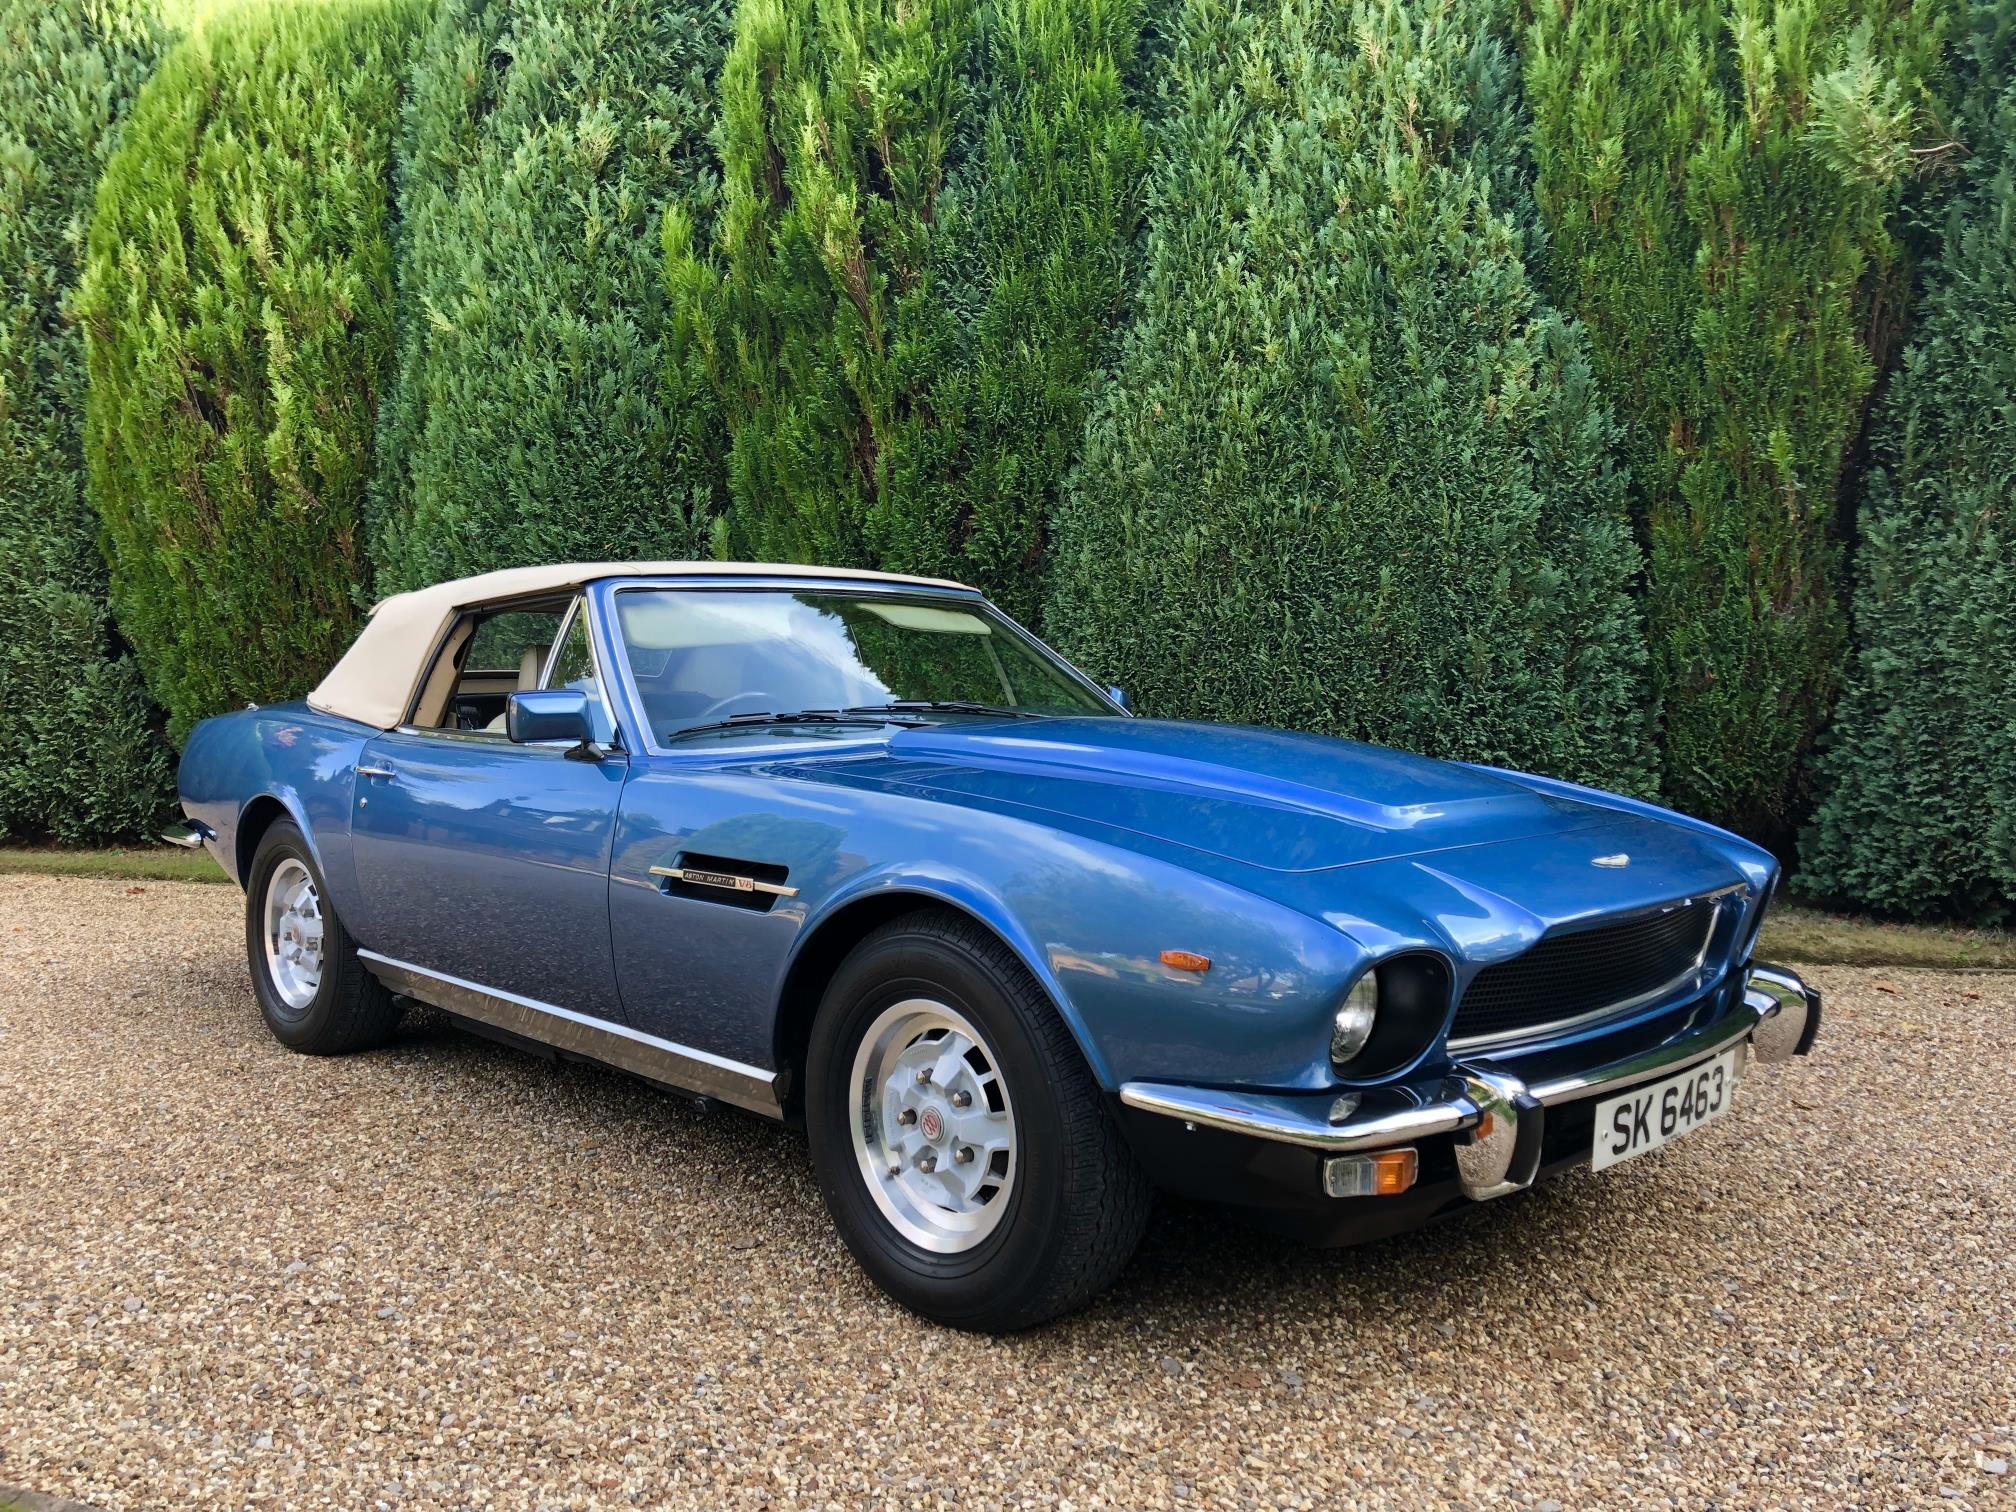 Daltrey bought this Aston Martin after The Who's Tommy album made them world famous. | Silverstone Auctions photo